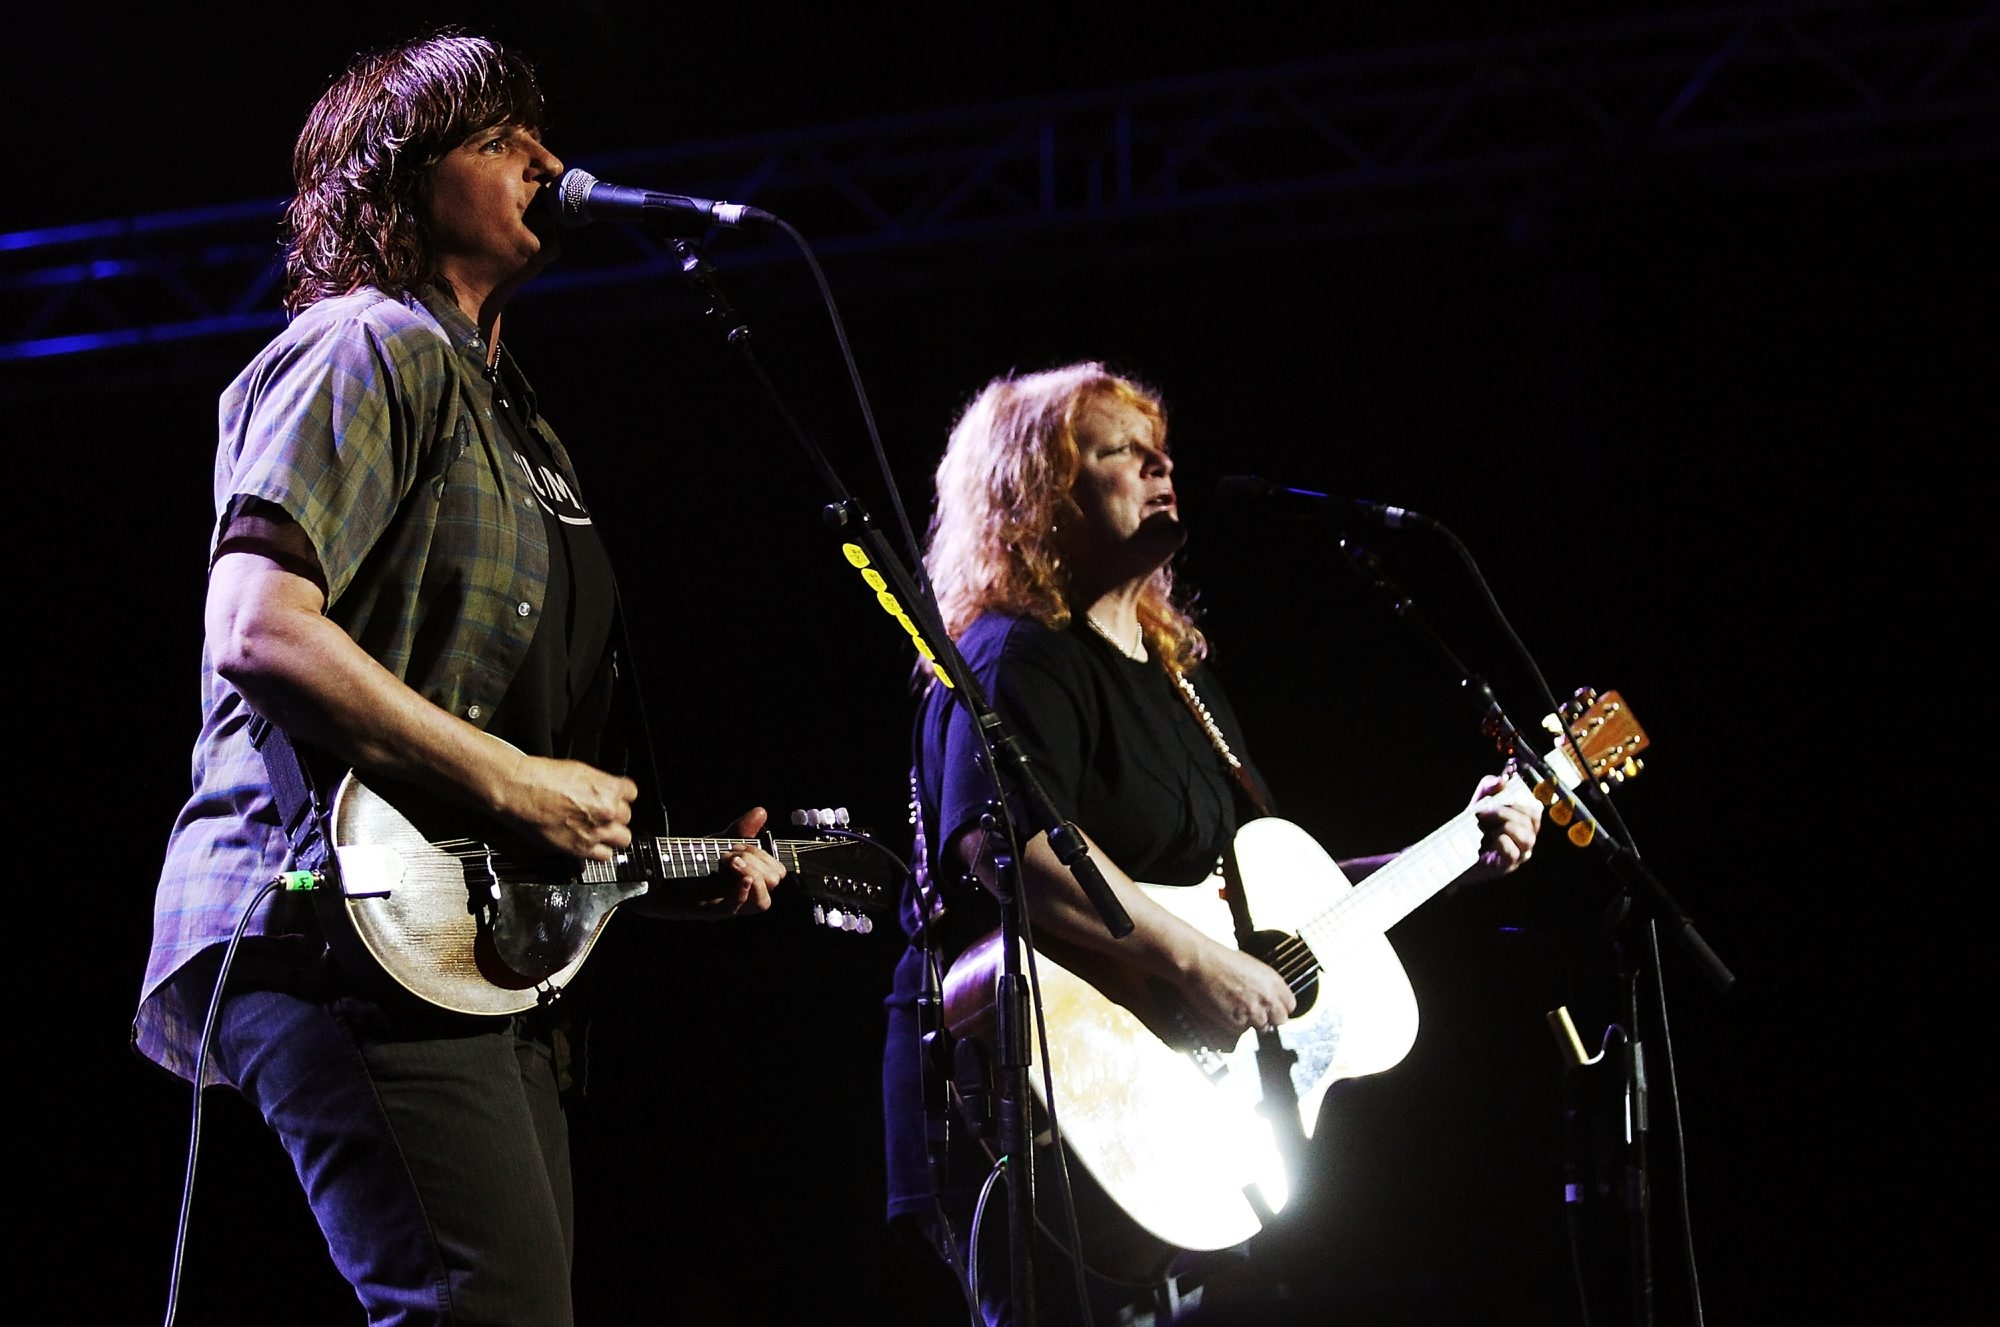 The Indigo Girls will perform tonight as the first 'BPO Rocks' program of the season. (Photo by Mark Metcalfe/Getty Images)